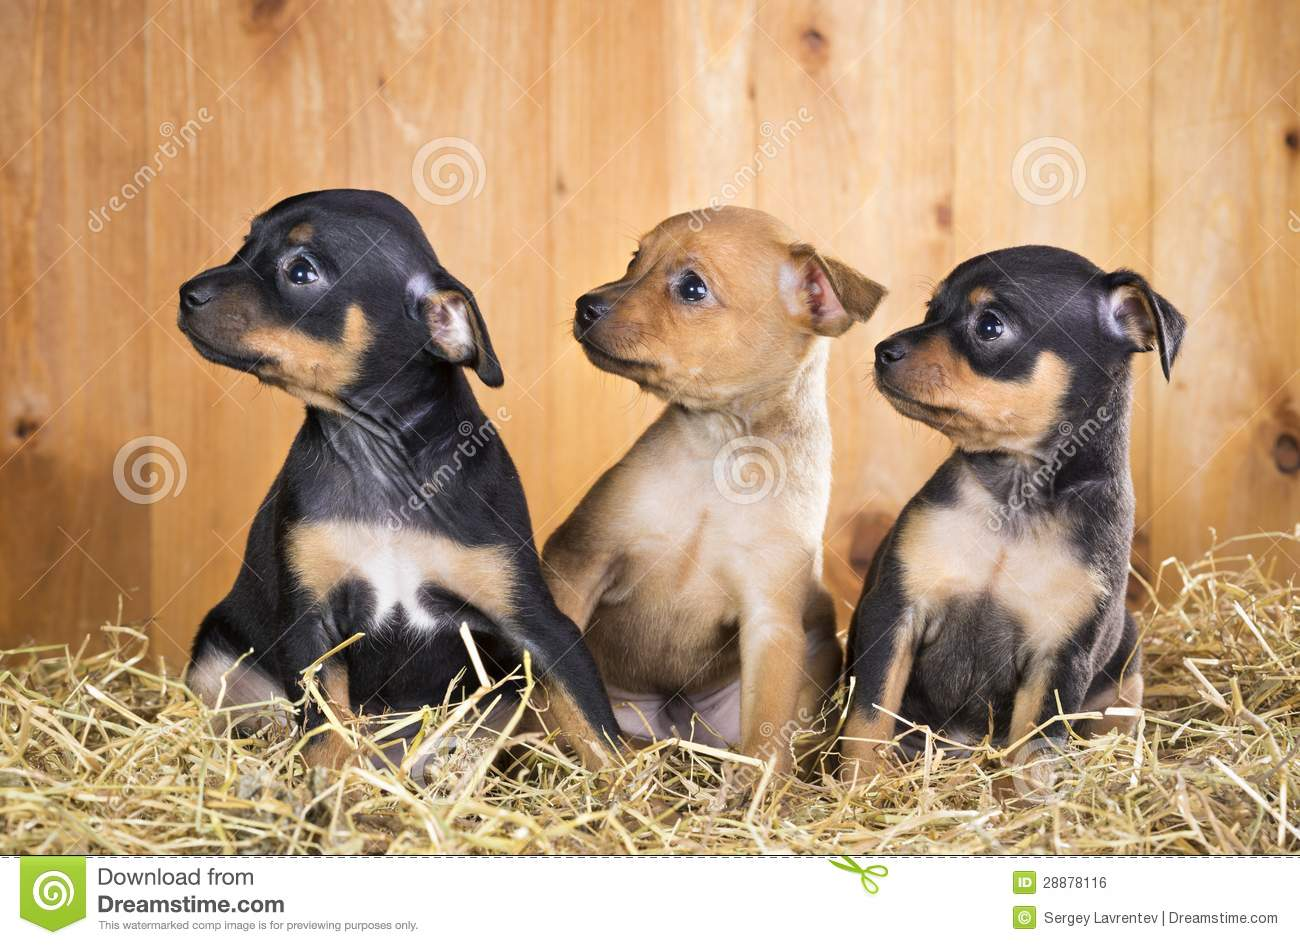 Russian Toy Puppies: Russian Royalty Free Stock Three Russian Toy Terrier Puppies Breed